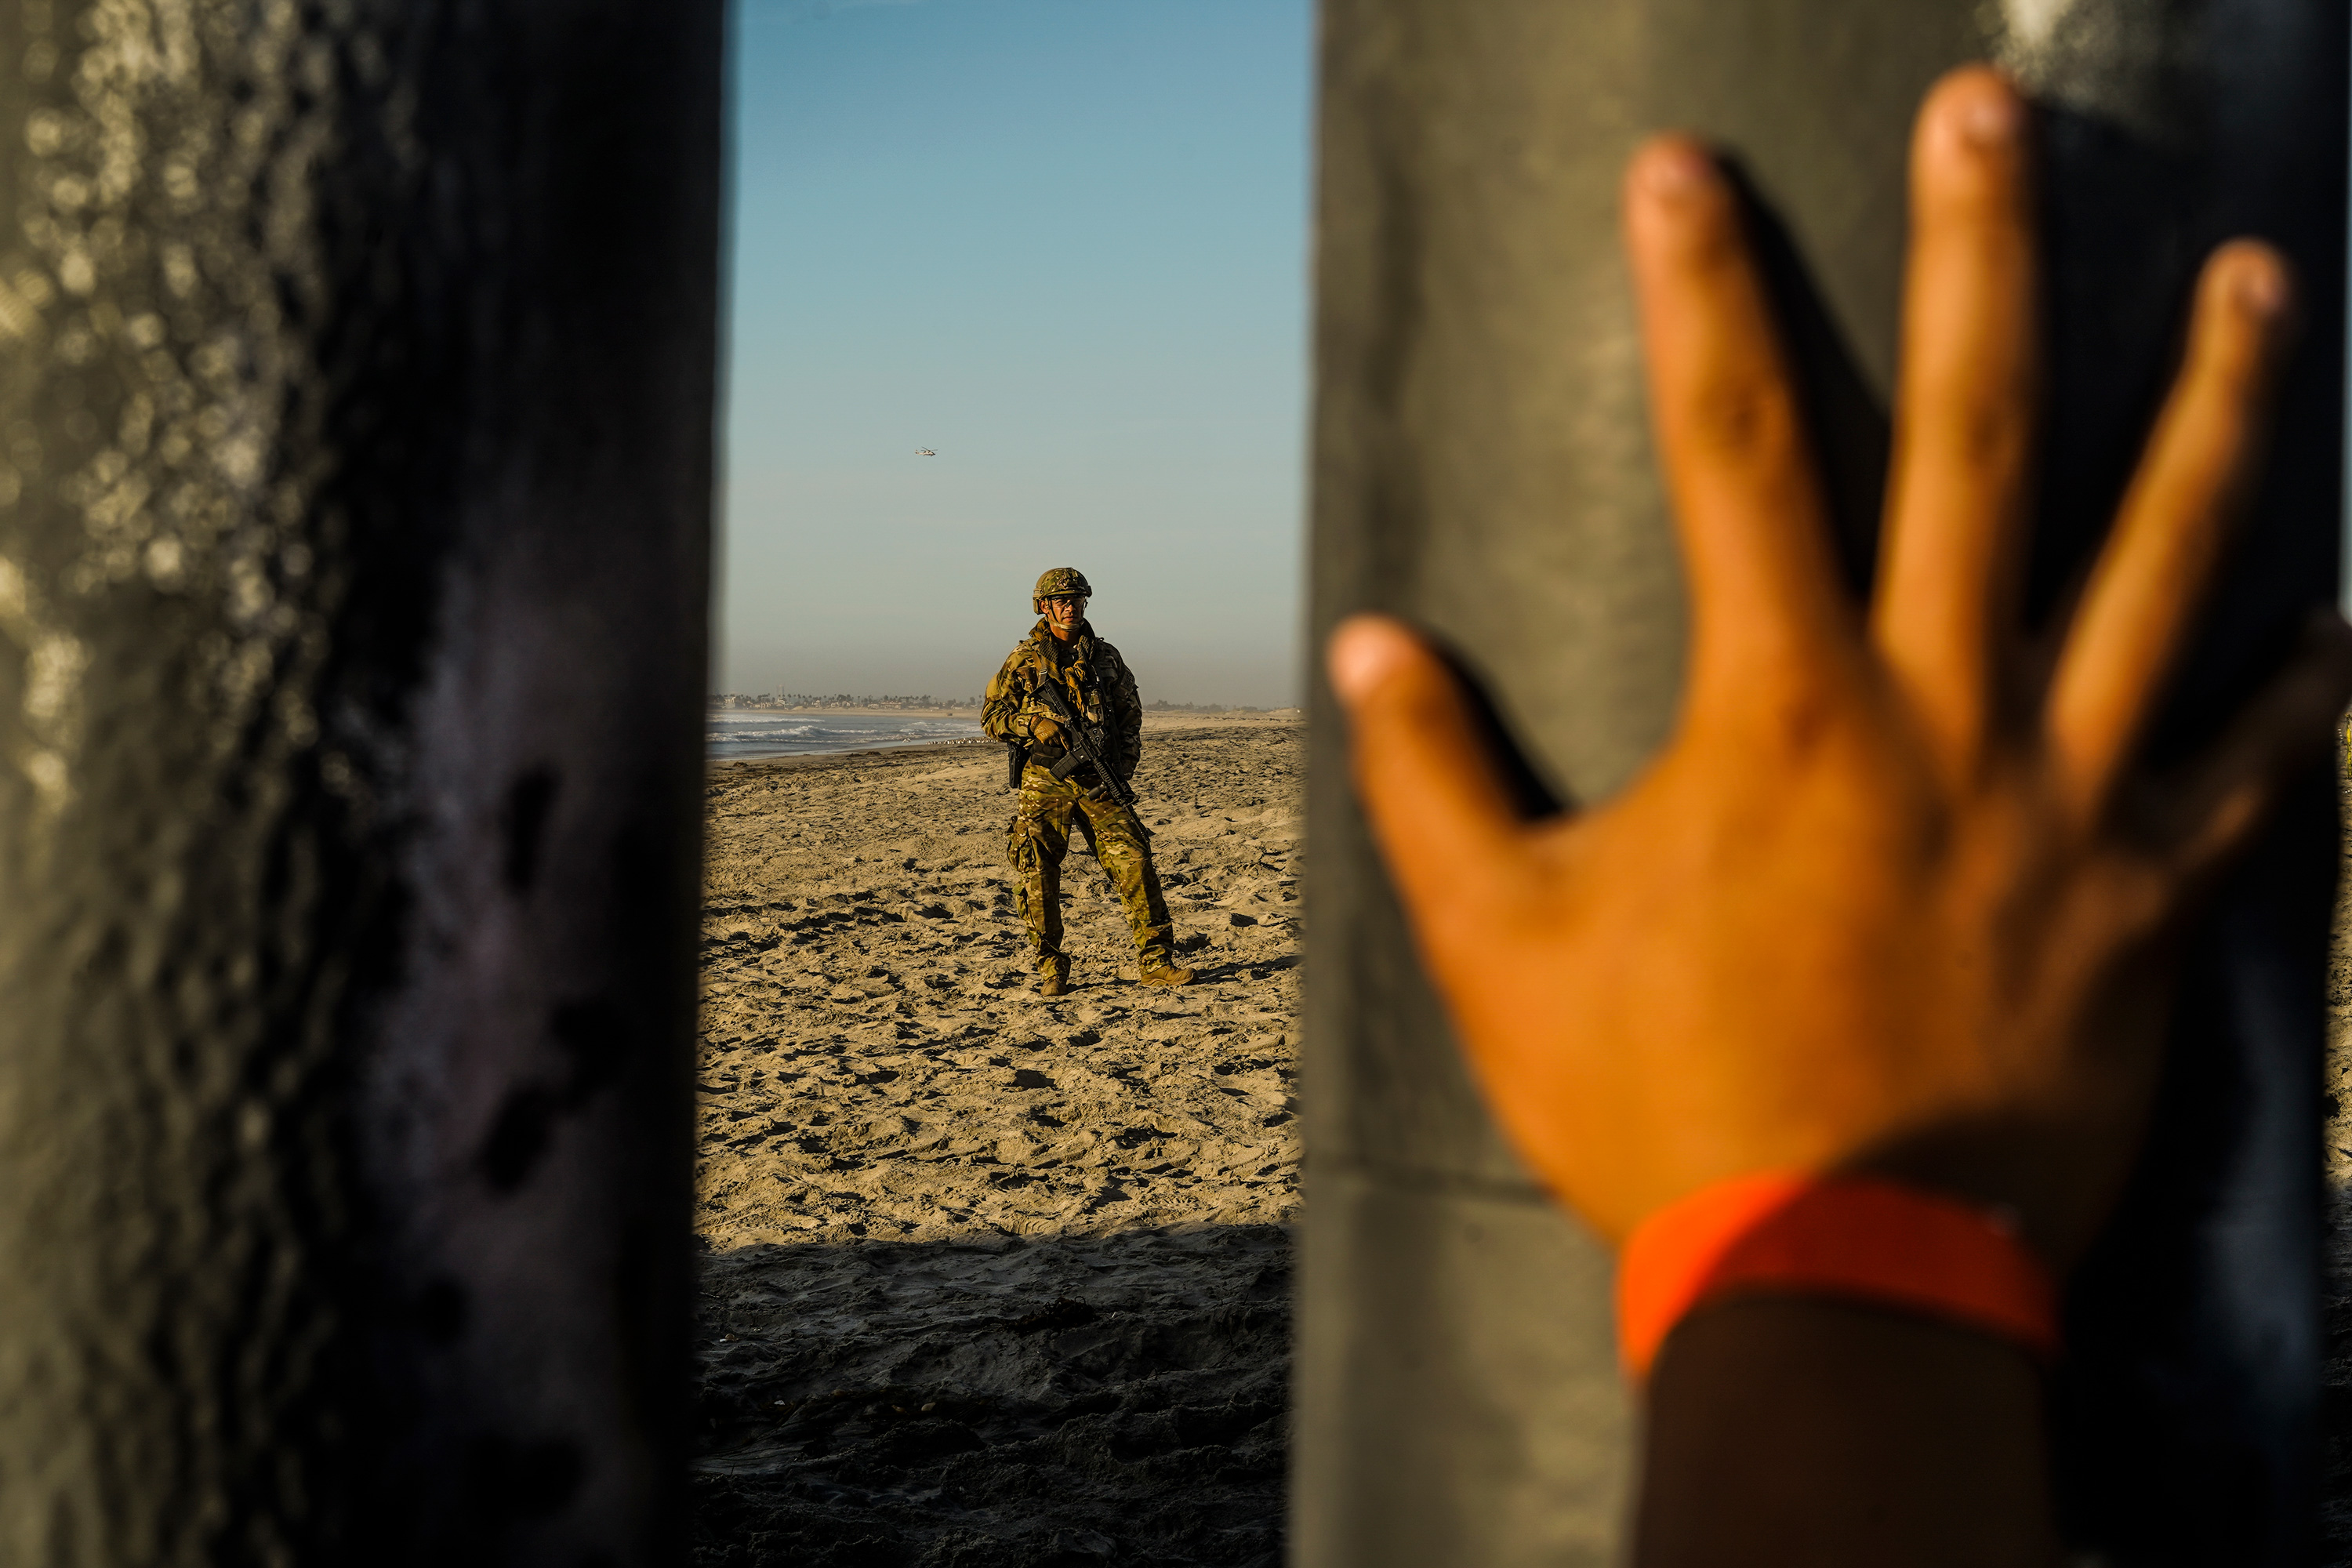 A soldier is seen on the US side of the border fence while a Honduran migrant's hand is placed on the border fence on Mexico side in Tijuana, Mexico on November 16, 2018.Thousands of Central American migrants, who are trying to go to the US, arrived in the US/Mexico border town of Tijuana in mid November 2018 however most of them have hard time to find a way to cross the border to the US. Go Nakamura